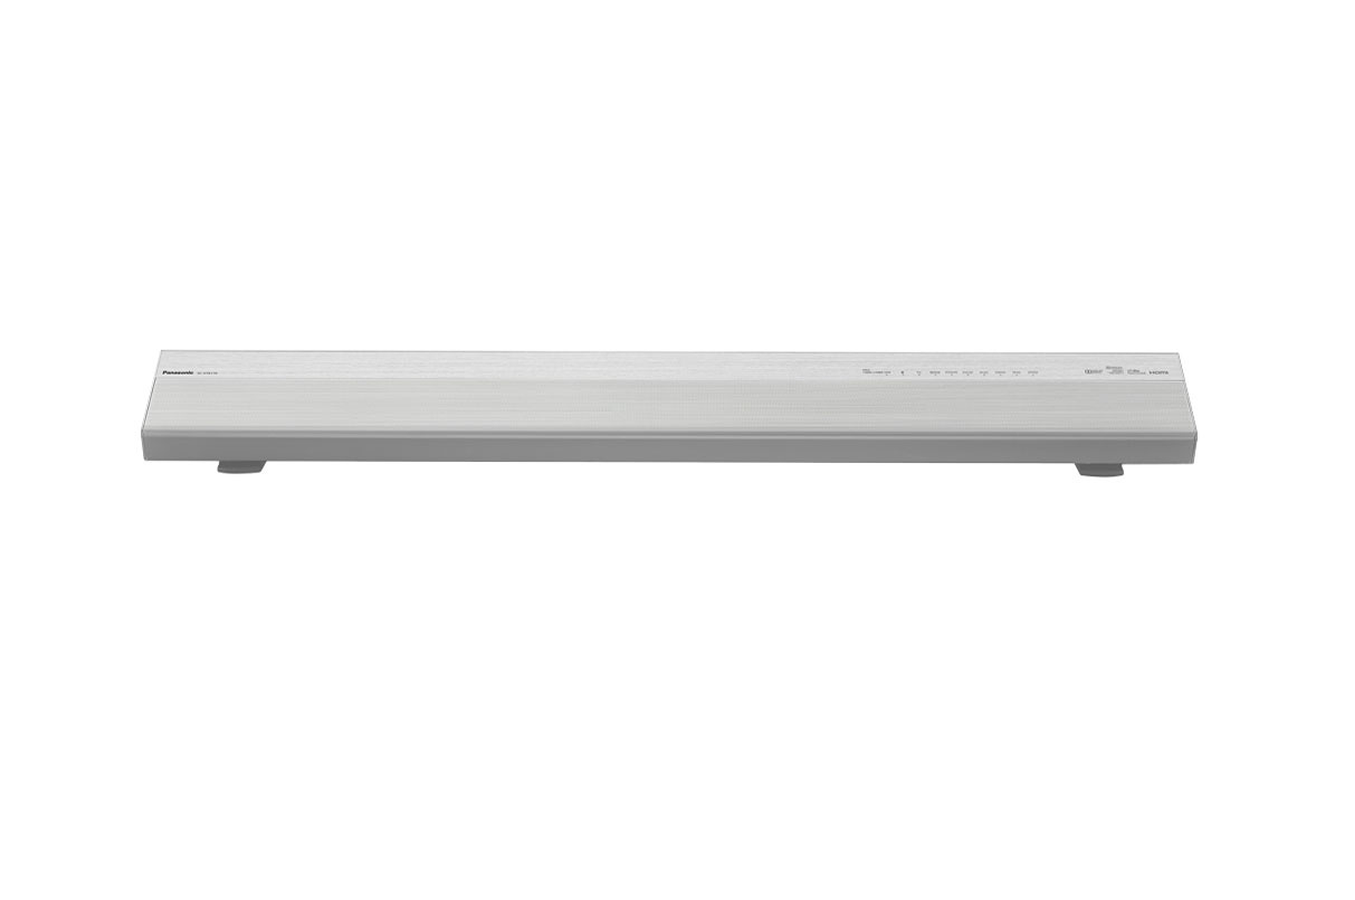 Barre de son panasonic sc htb170 silver 3732231 darty - Barre de son carrefour ...